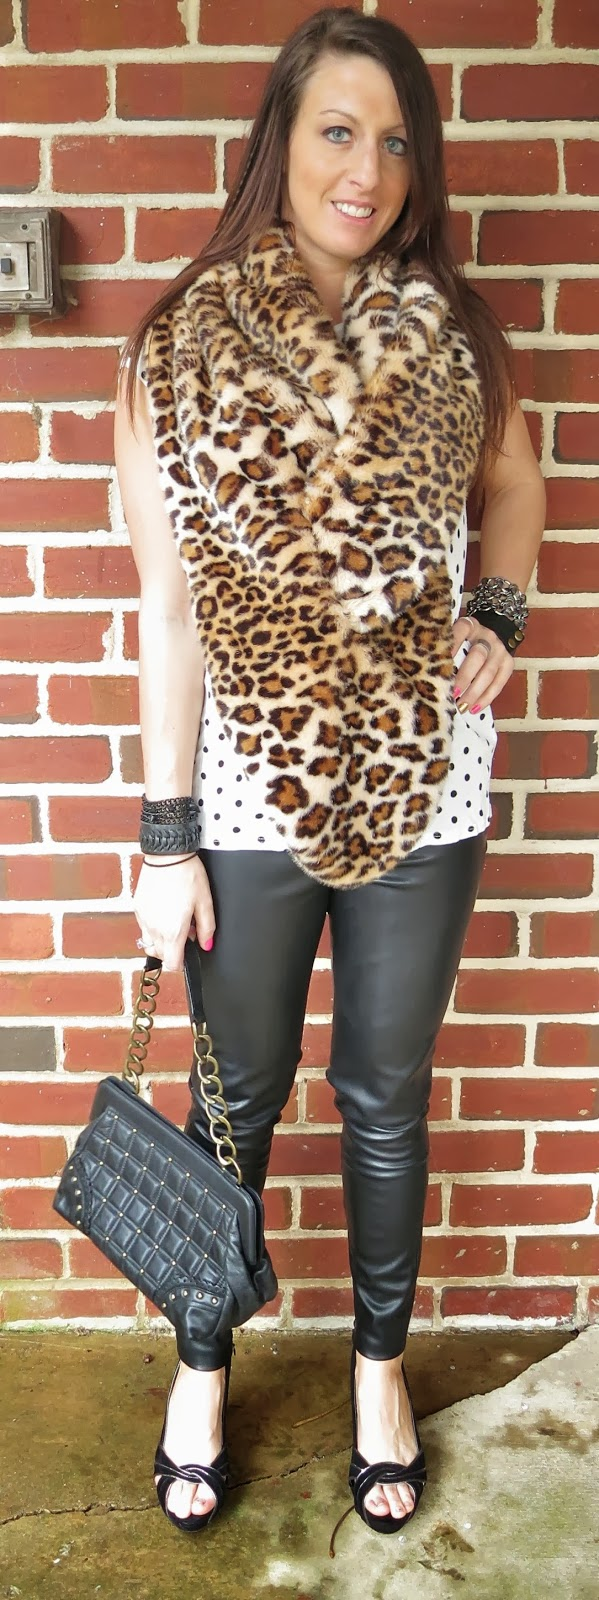 Fashion, leather leggings, leopard, ootd, outfit, Outfit Ideas, outfit of the day, Outfits, polka dots,